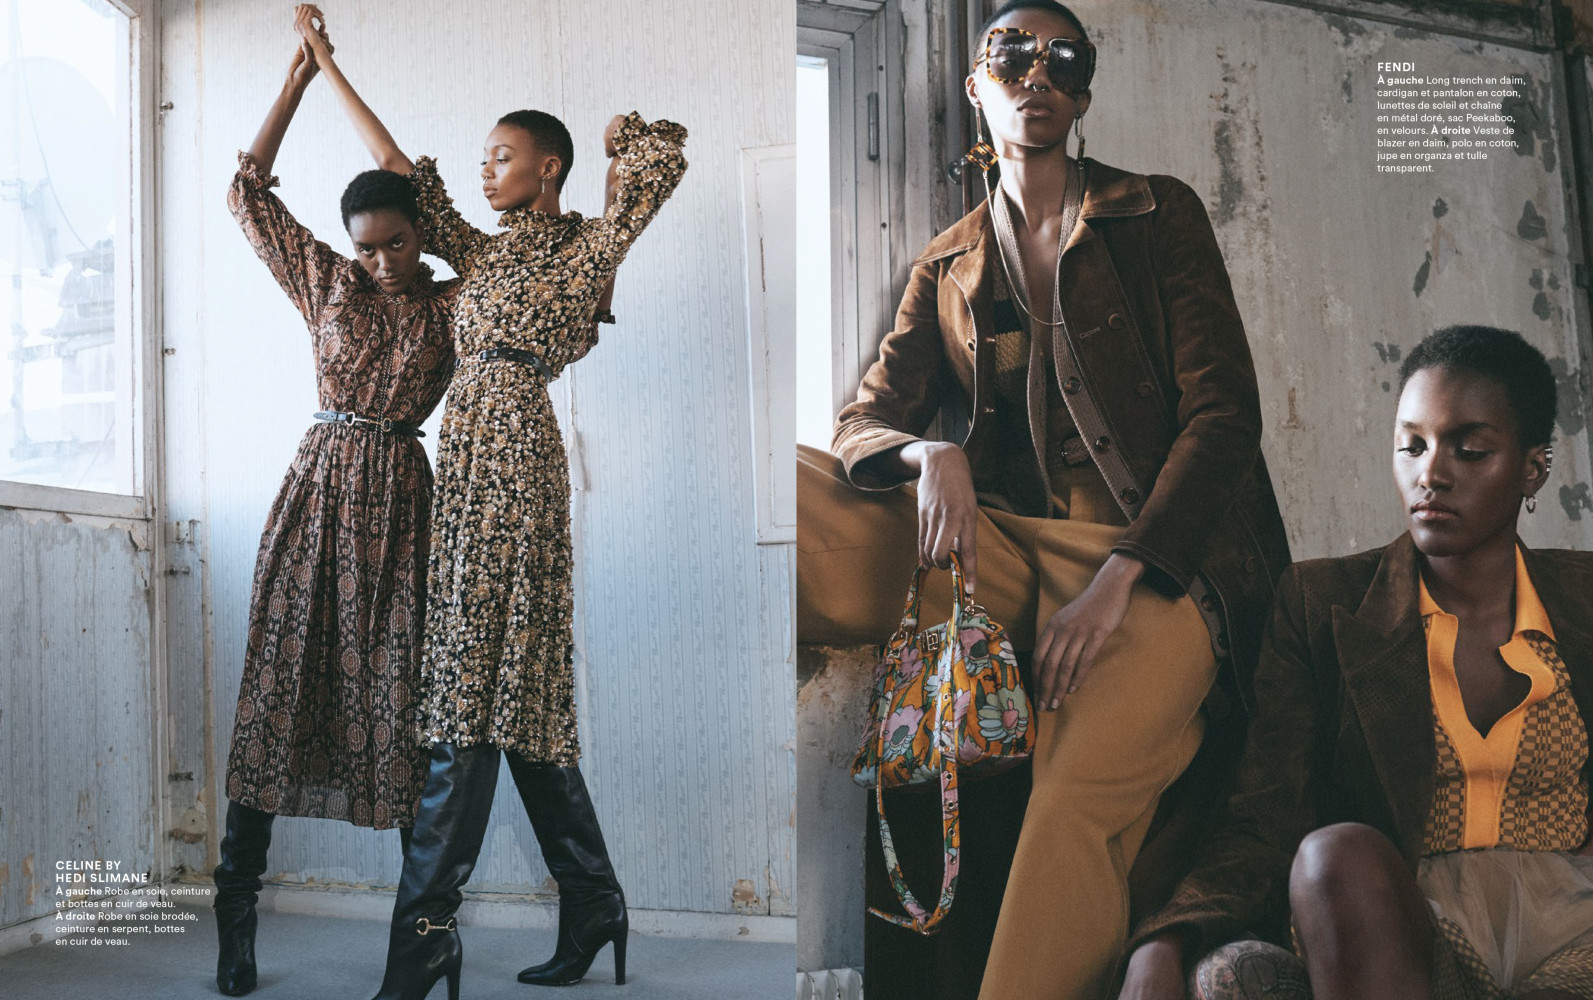 Bauye for Marie Claire